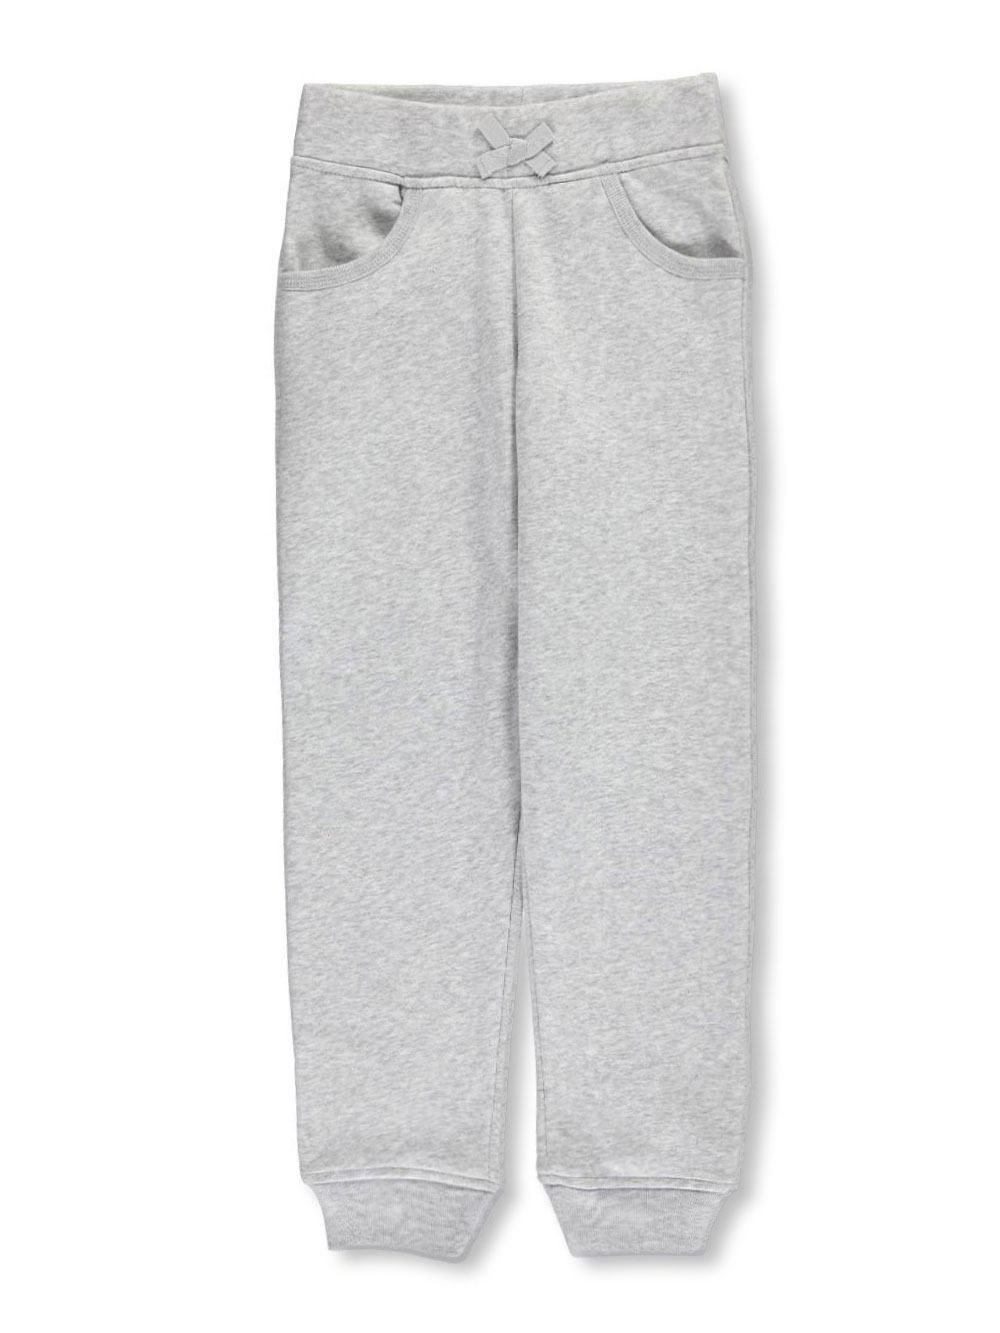 Girls Sweatpants/Joggers